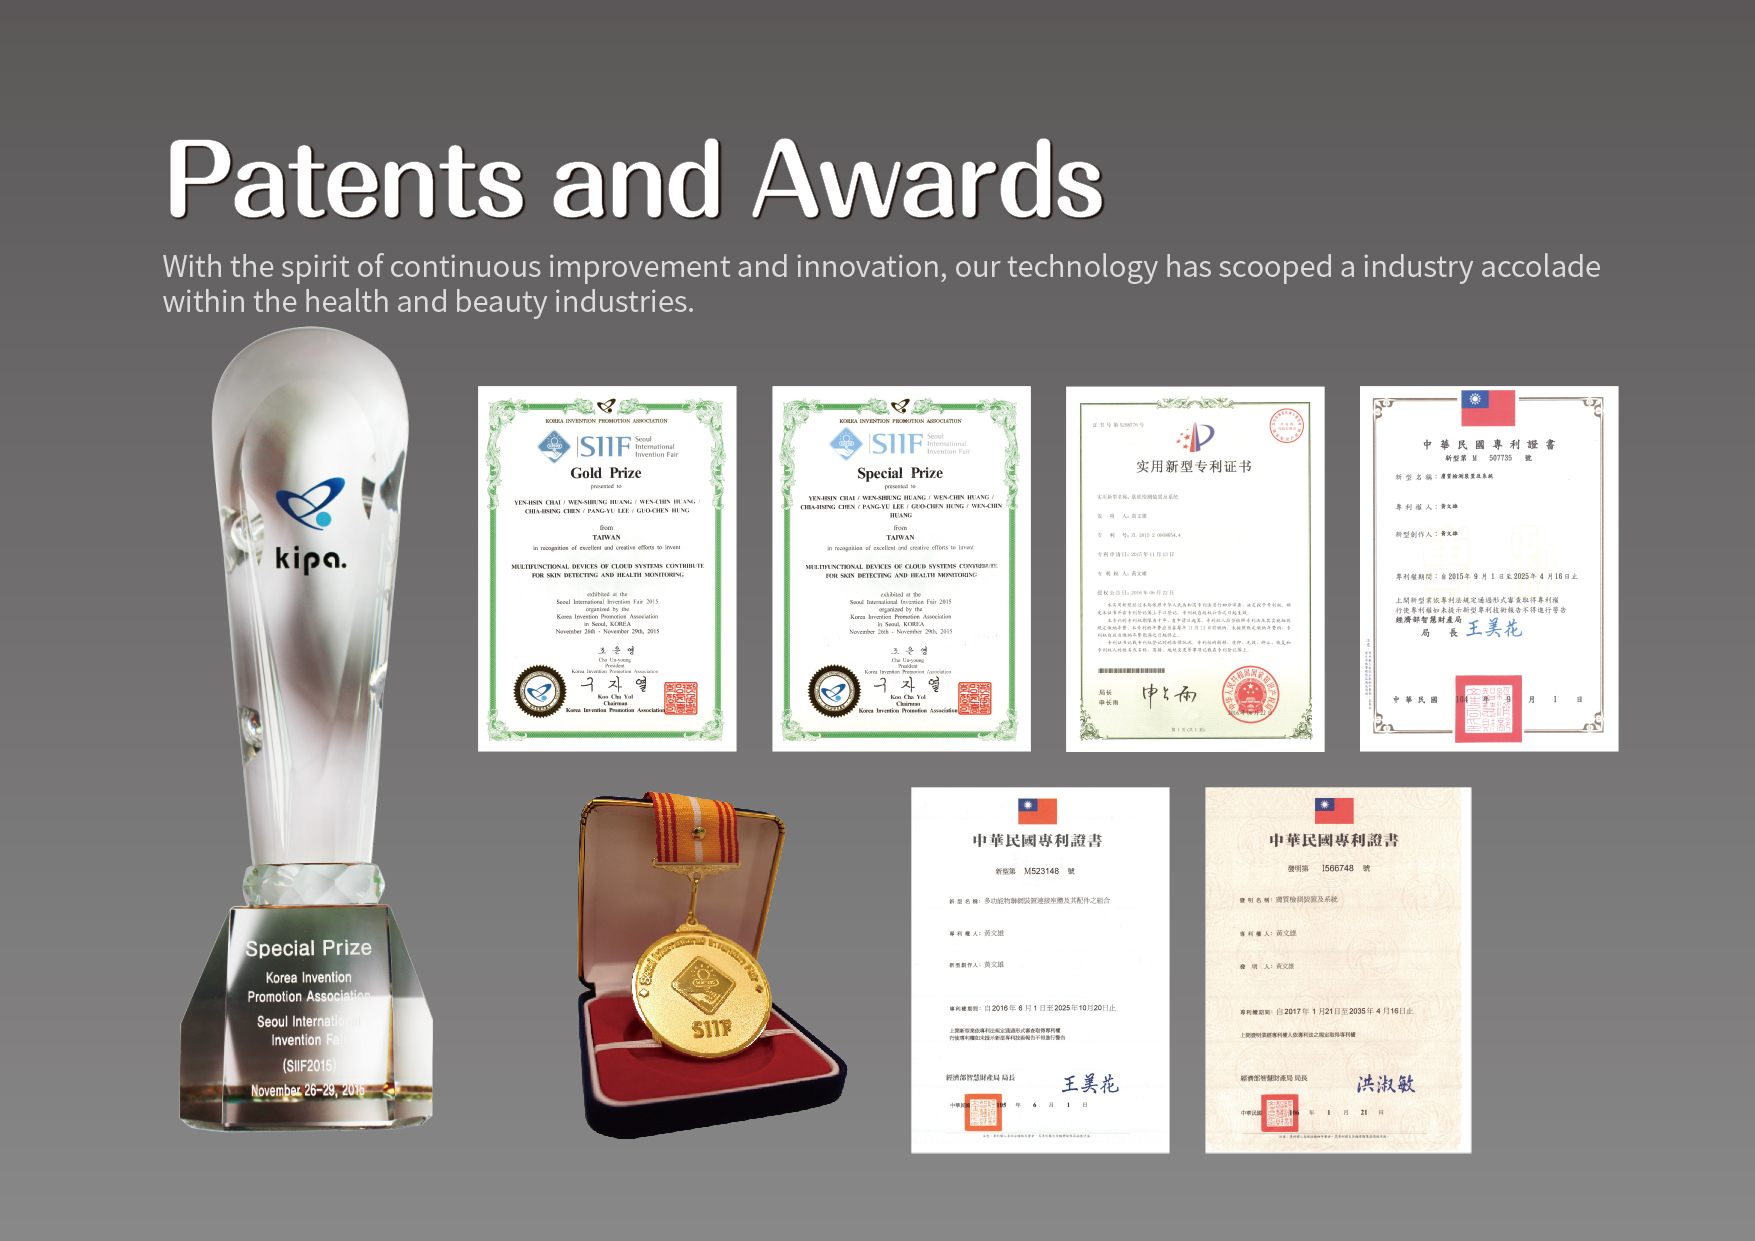 Patents and Awards: With the spirit of continuous improvement and innovation, our technology has scooped a industry accolade within the health and beauty industries.